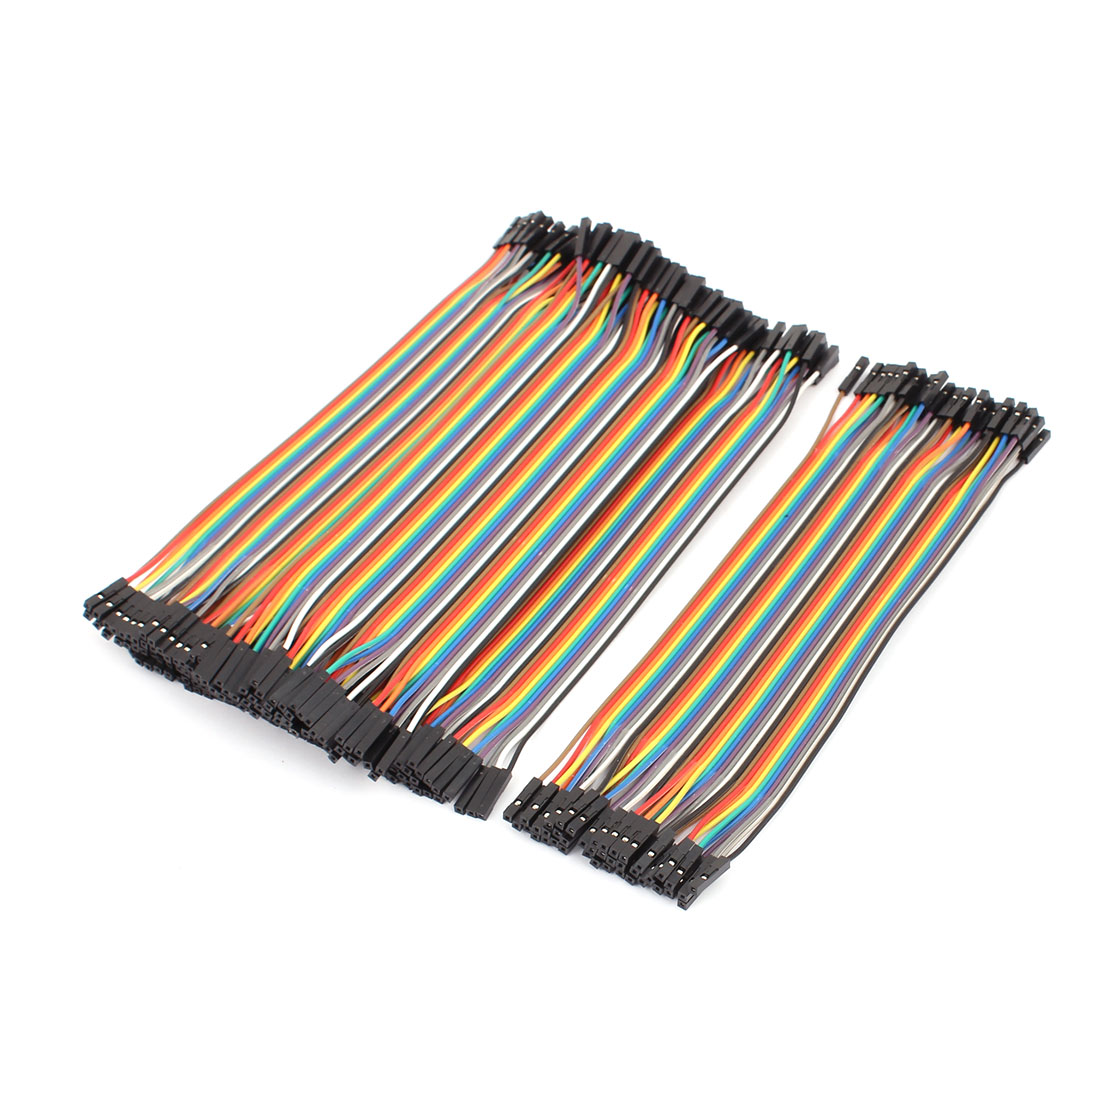 5PCS 2.0mm to 2.54mm Female Connector 40P Breadboard Double Head Jumper Wire Cable 20cm Length